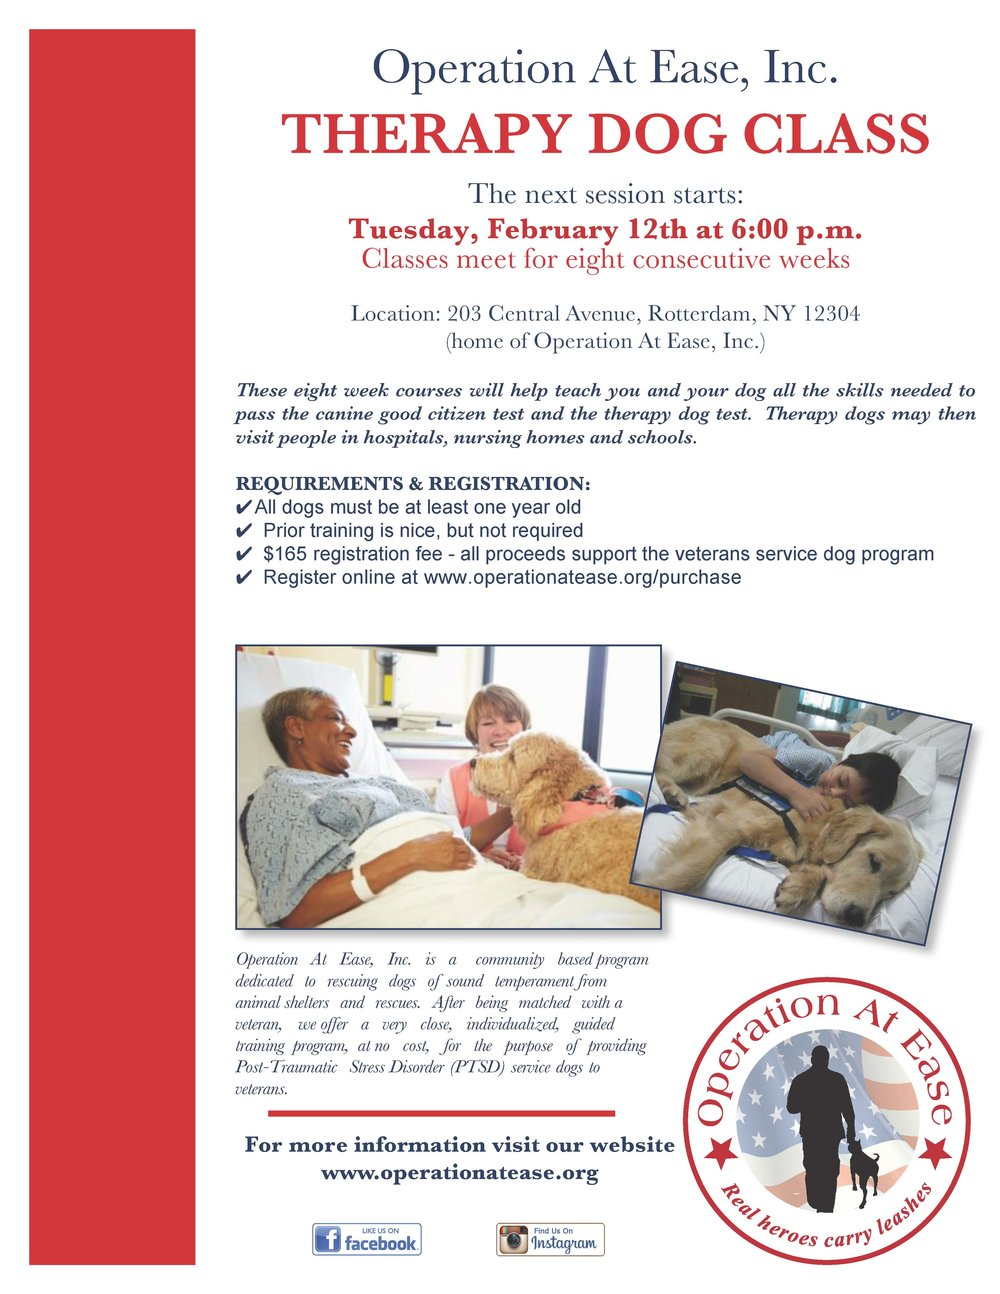 Therapy Dog Flyer 2019-02.jpg